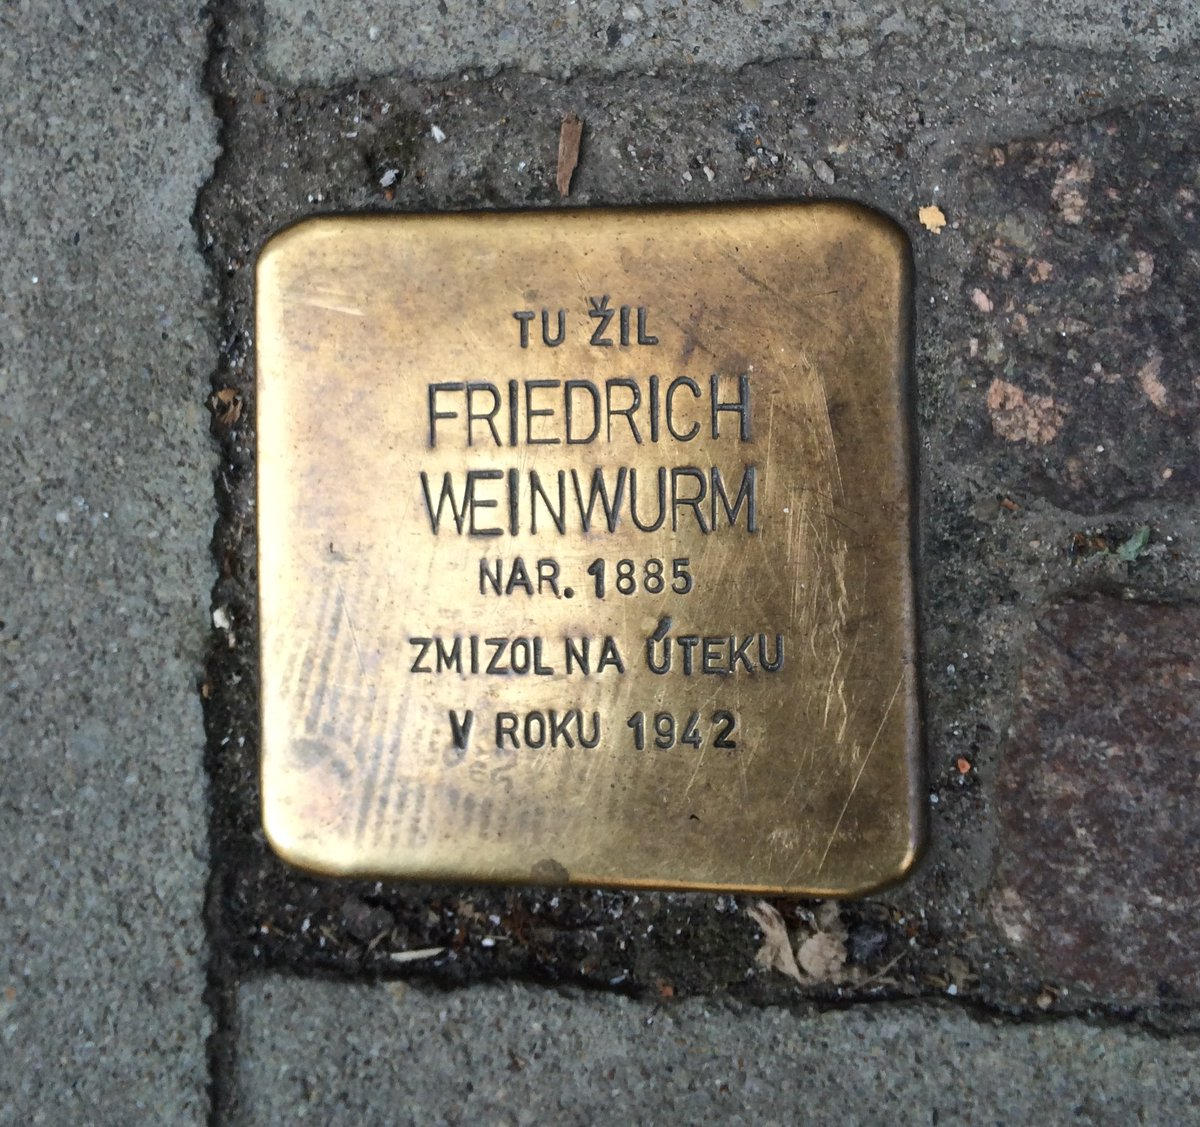 """Glad to see Friedrich Weinwurm remembered at @sng_gallery in #Bratislava, #Slovakia. A groundbreaking architect whose life & career was cut short by the anti-semitism of WWII.  I lived in a Weinwurm building and often paused at his """"stolperstein"""" downtown. spectator.sme.sk/c/20773119/an-…"""